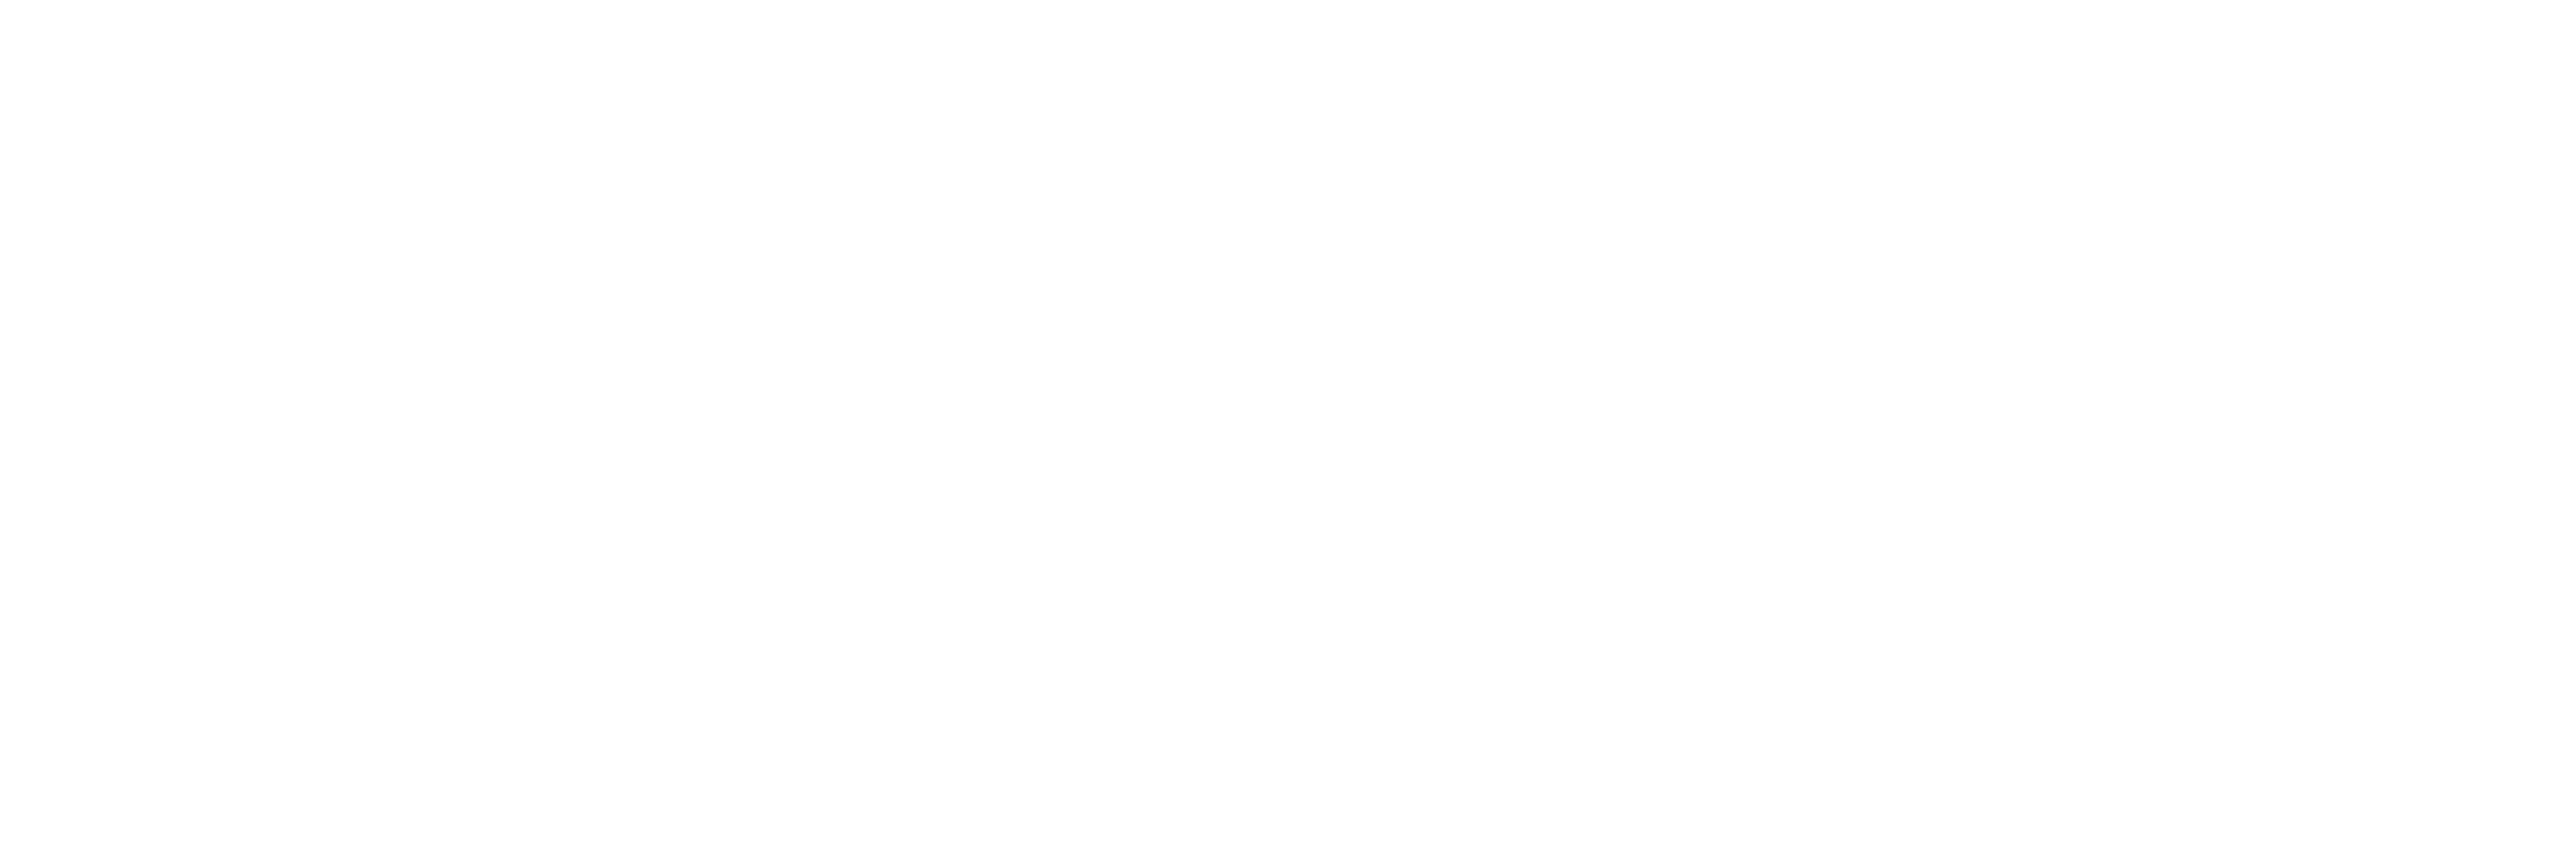 realtor-mls-housing white